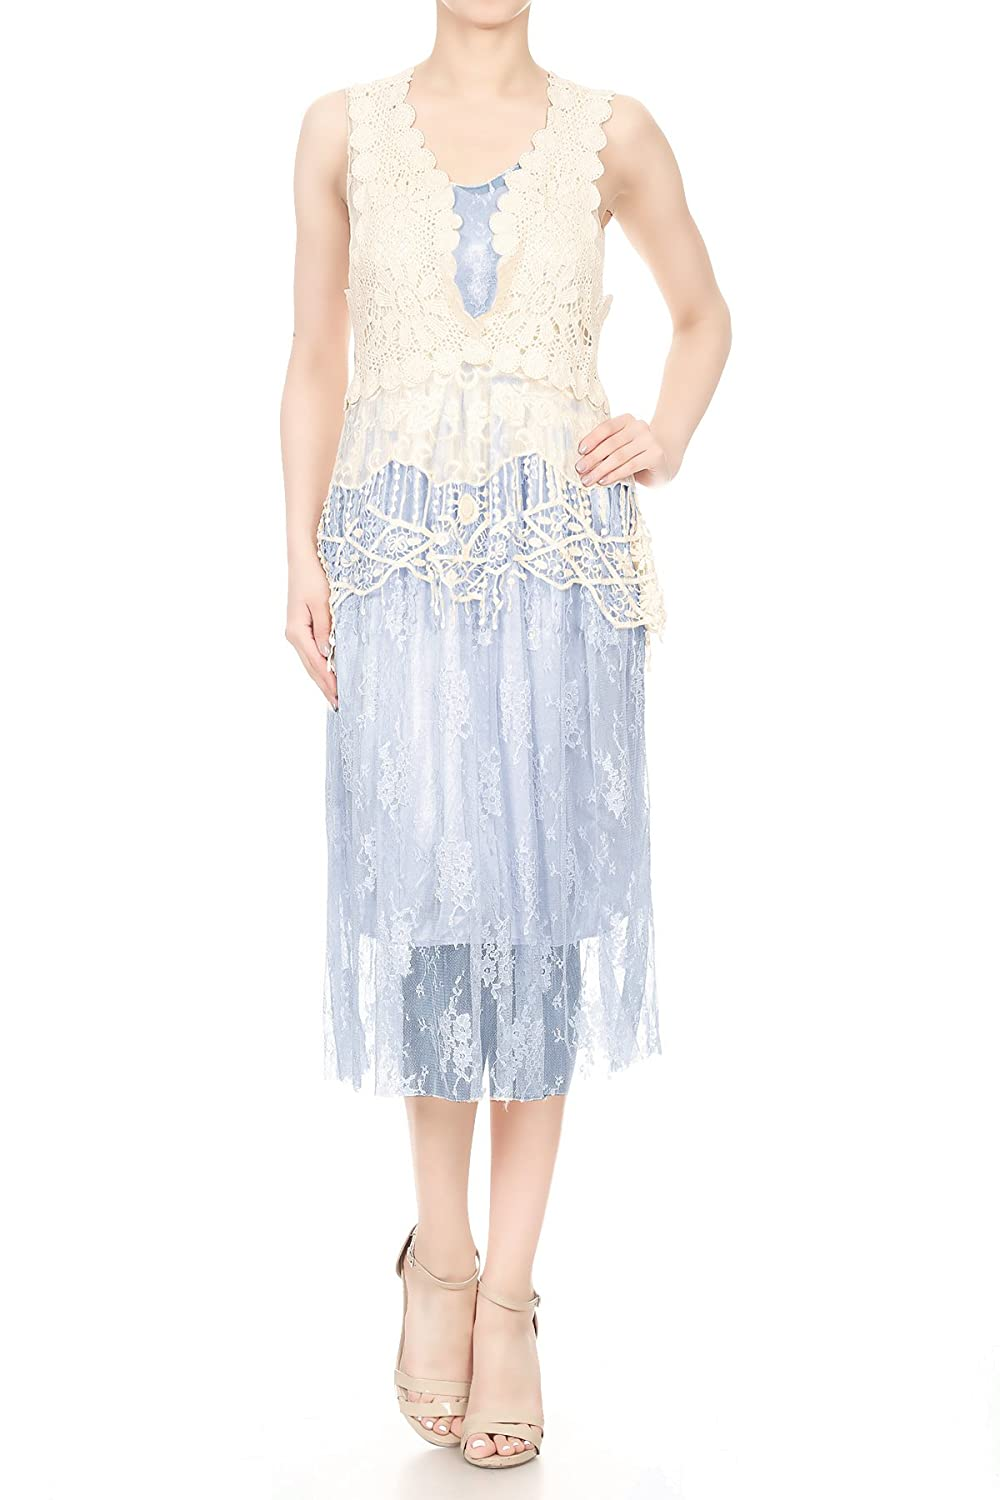 1920s Dresses UK | Flapper, Gatsby, Downton Abbey Dress Anna-Kaci Womens Sleeveless Bohemian Boho Crochet Lace Vest Summer Beach Dress £35.99 AT vintagedancer.com